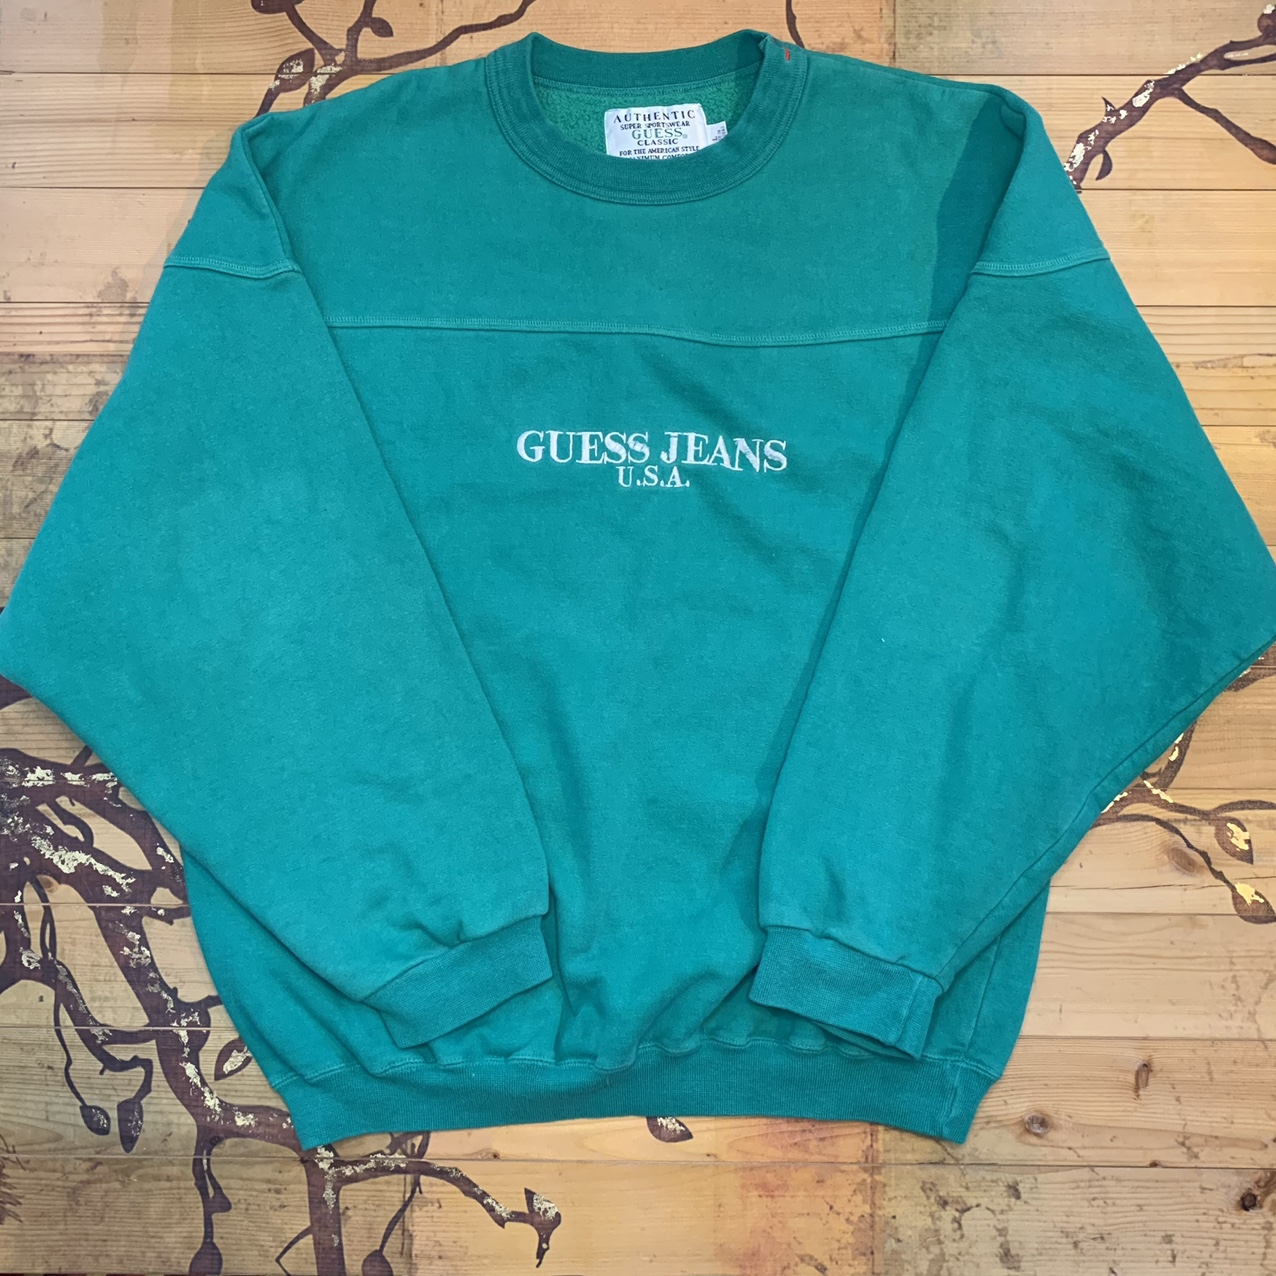 Product Image 1 - Green Guess Sweatshirt the color is